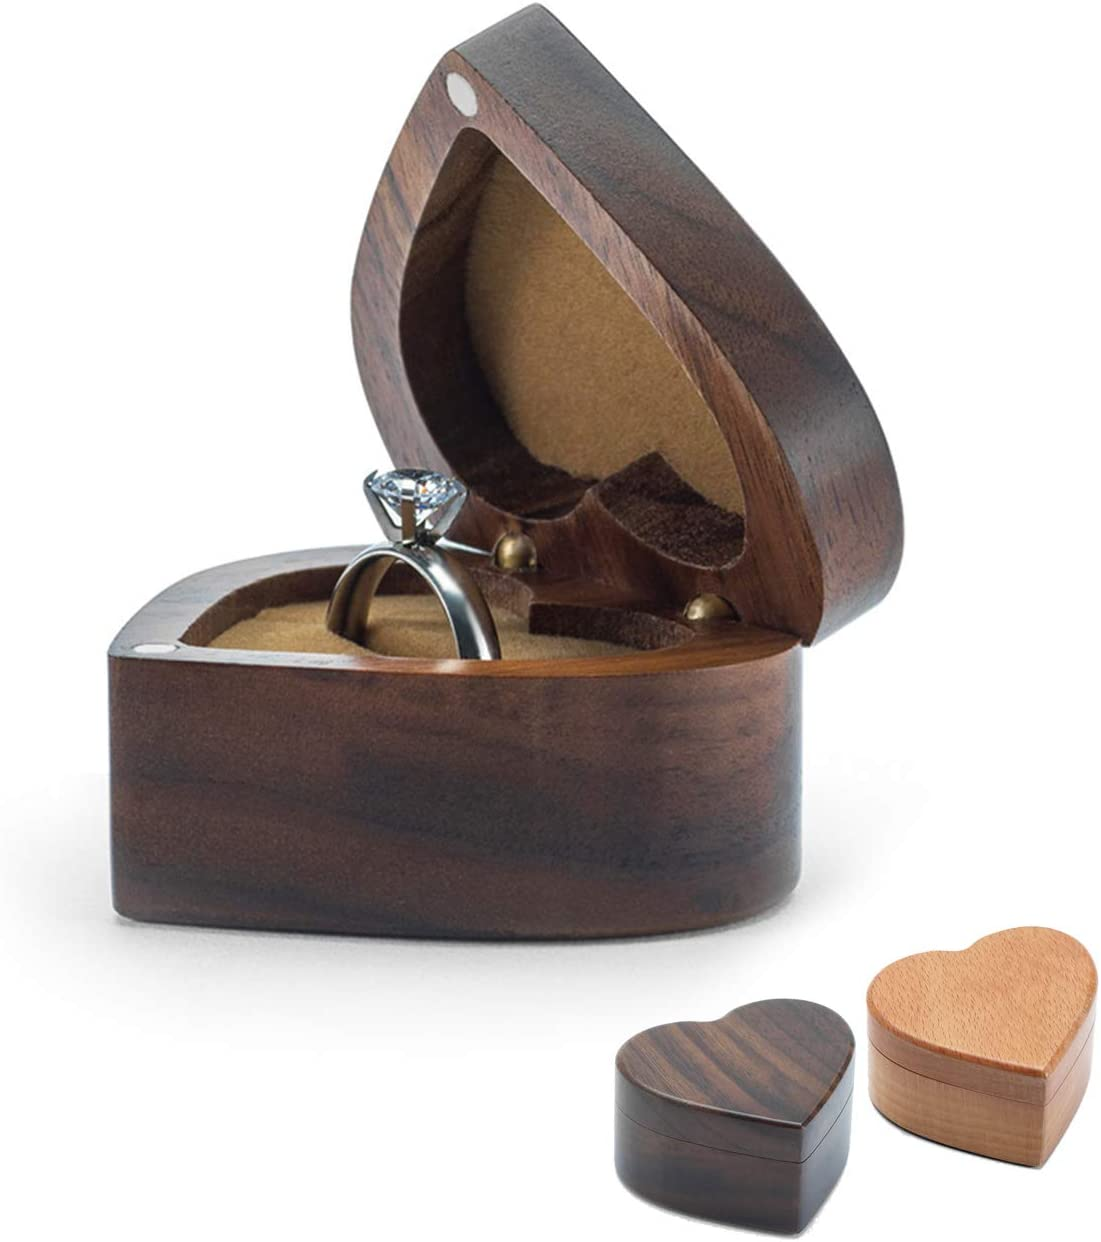 Wislist Heart Shaped Walnut Wood Ring Box Velvet Soft Interior Holder Jewelry Chest Organizer Earrings Coin Jewelry Wooden Presentation Box Case for Proposal Engagement Wedding Ceremony Birthday Gift